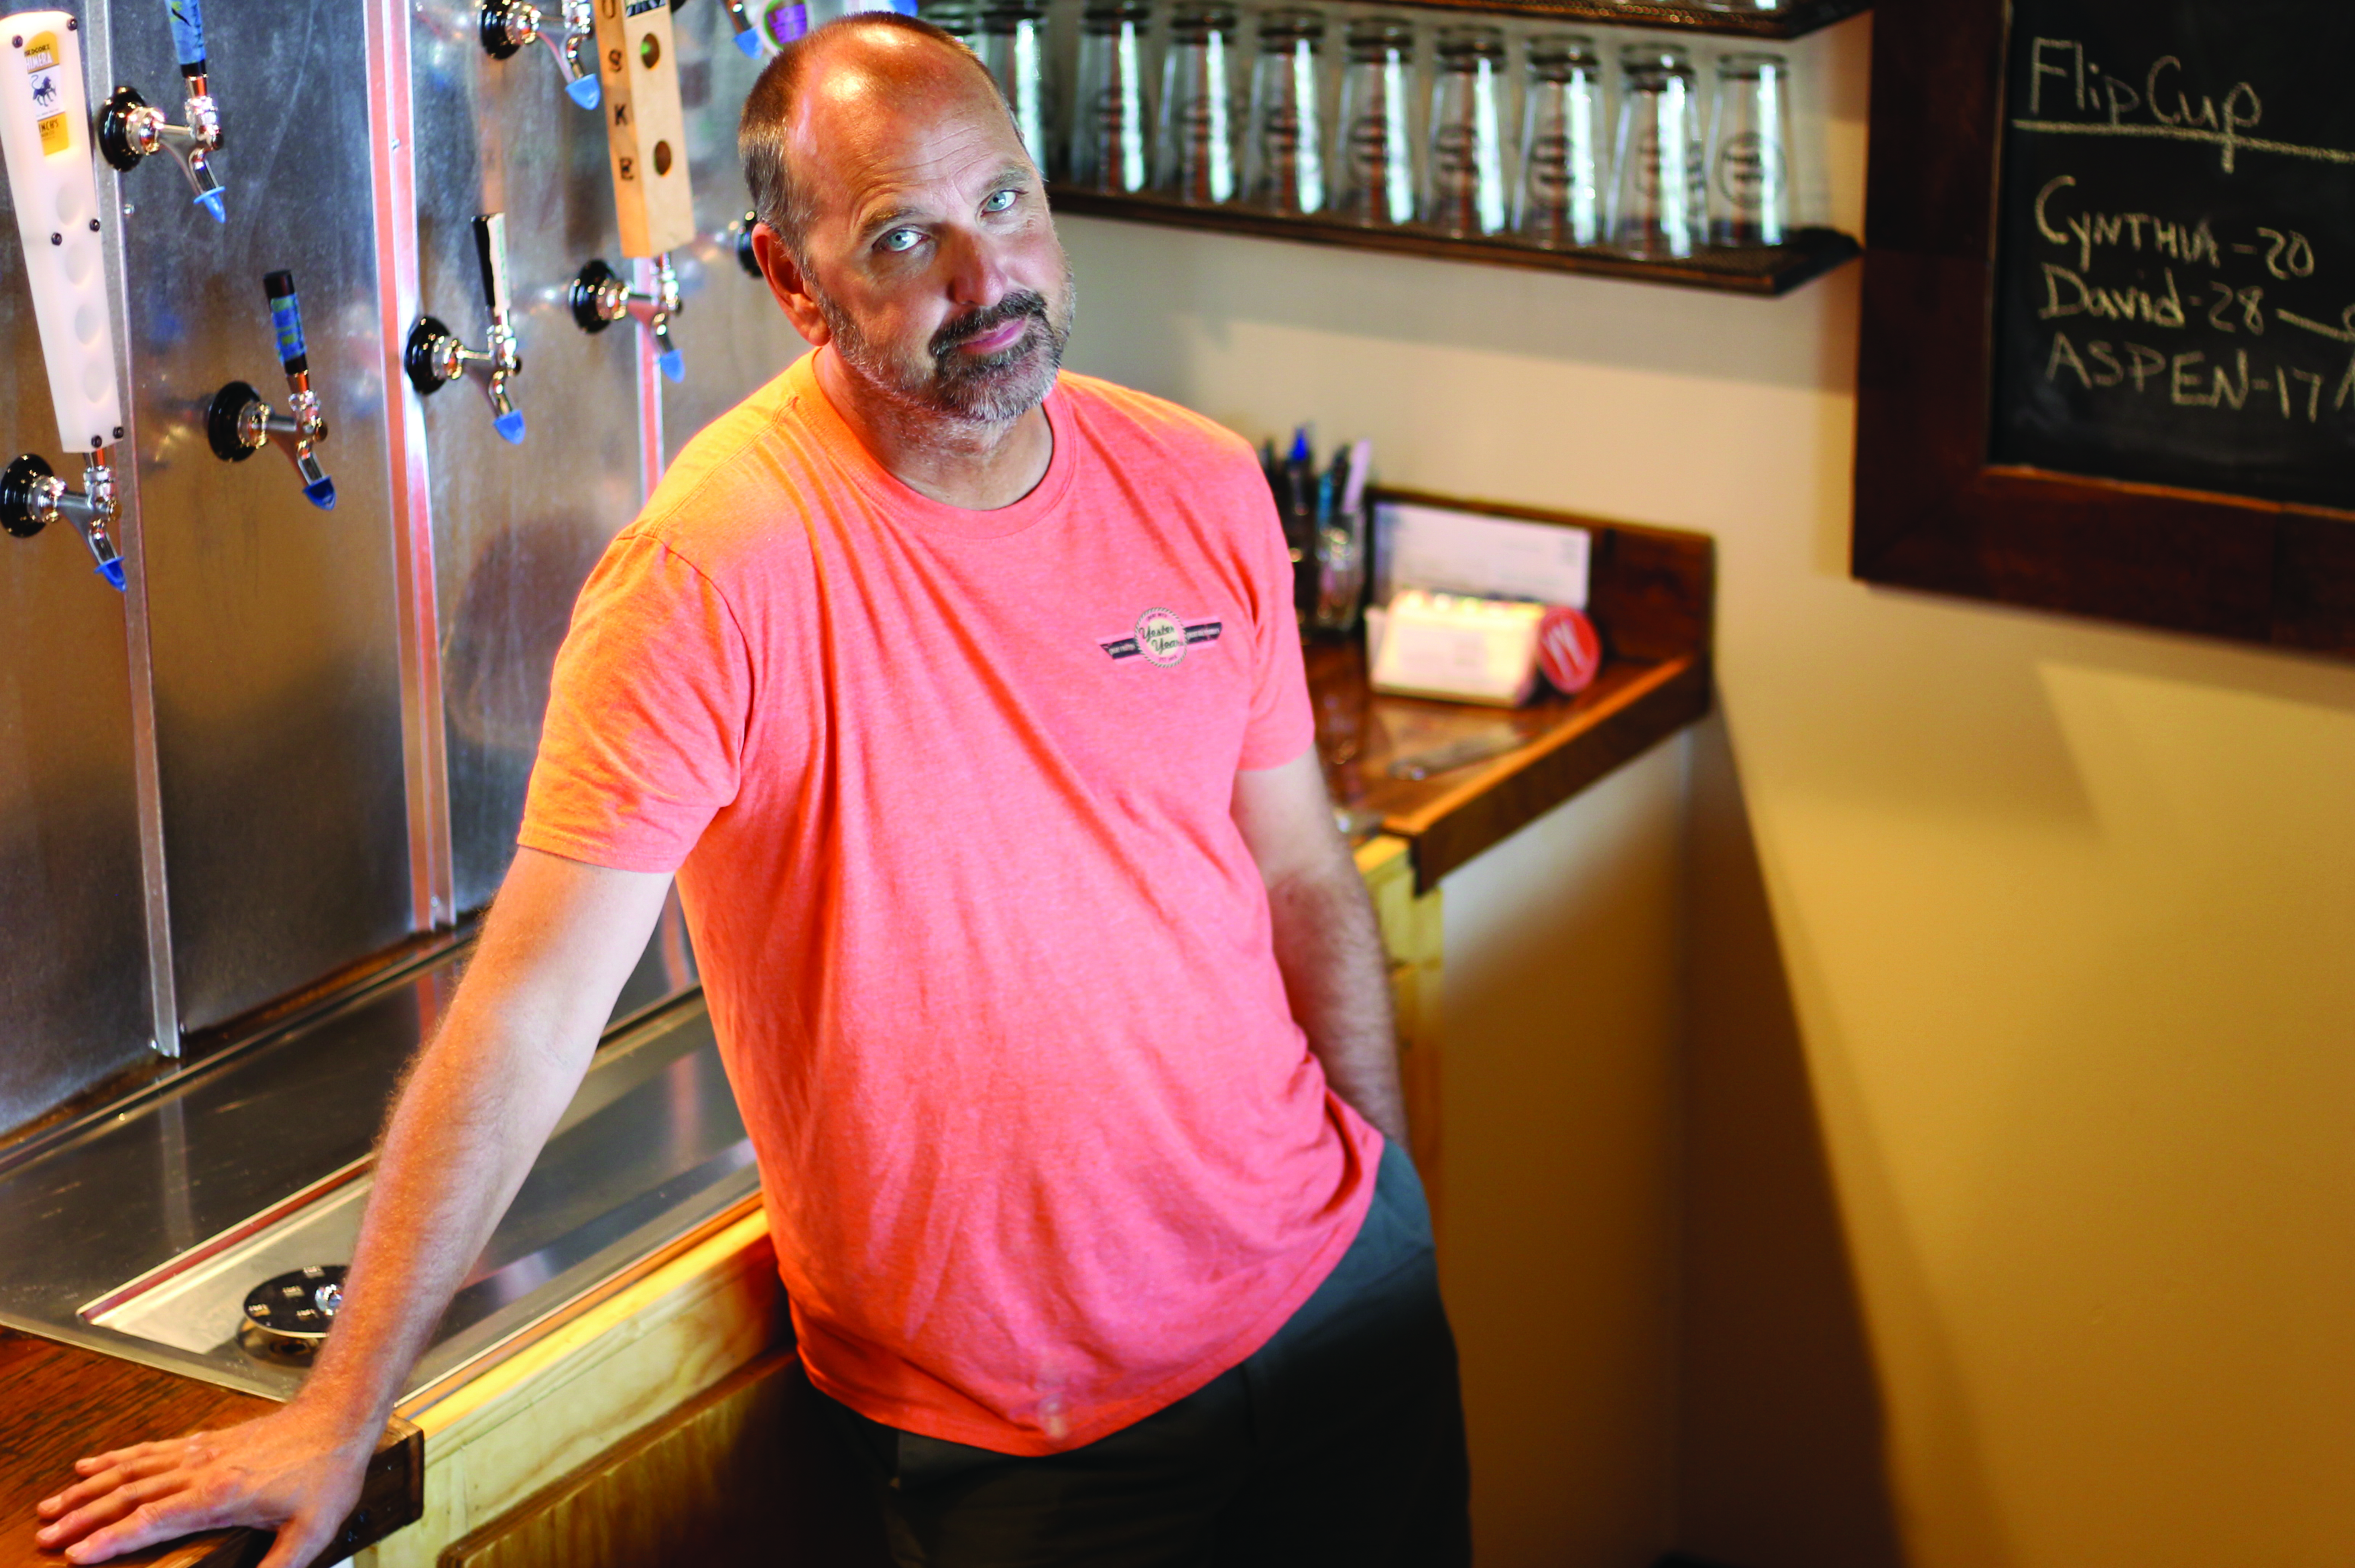 YesterYears Brewery: Turning a hobby into a business